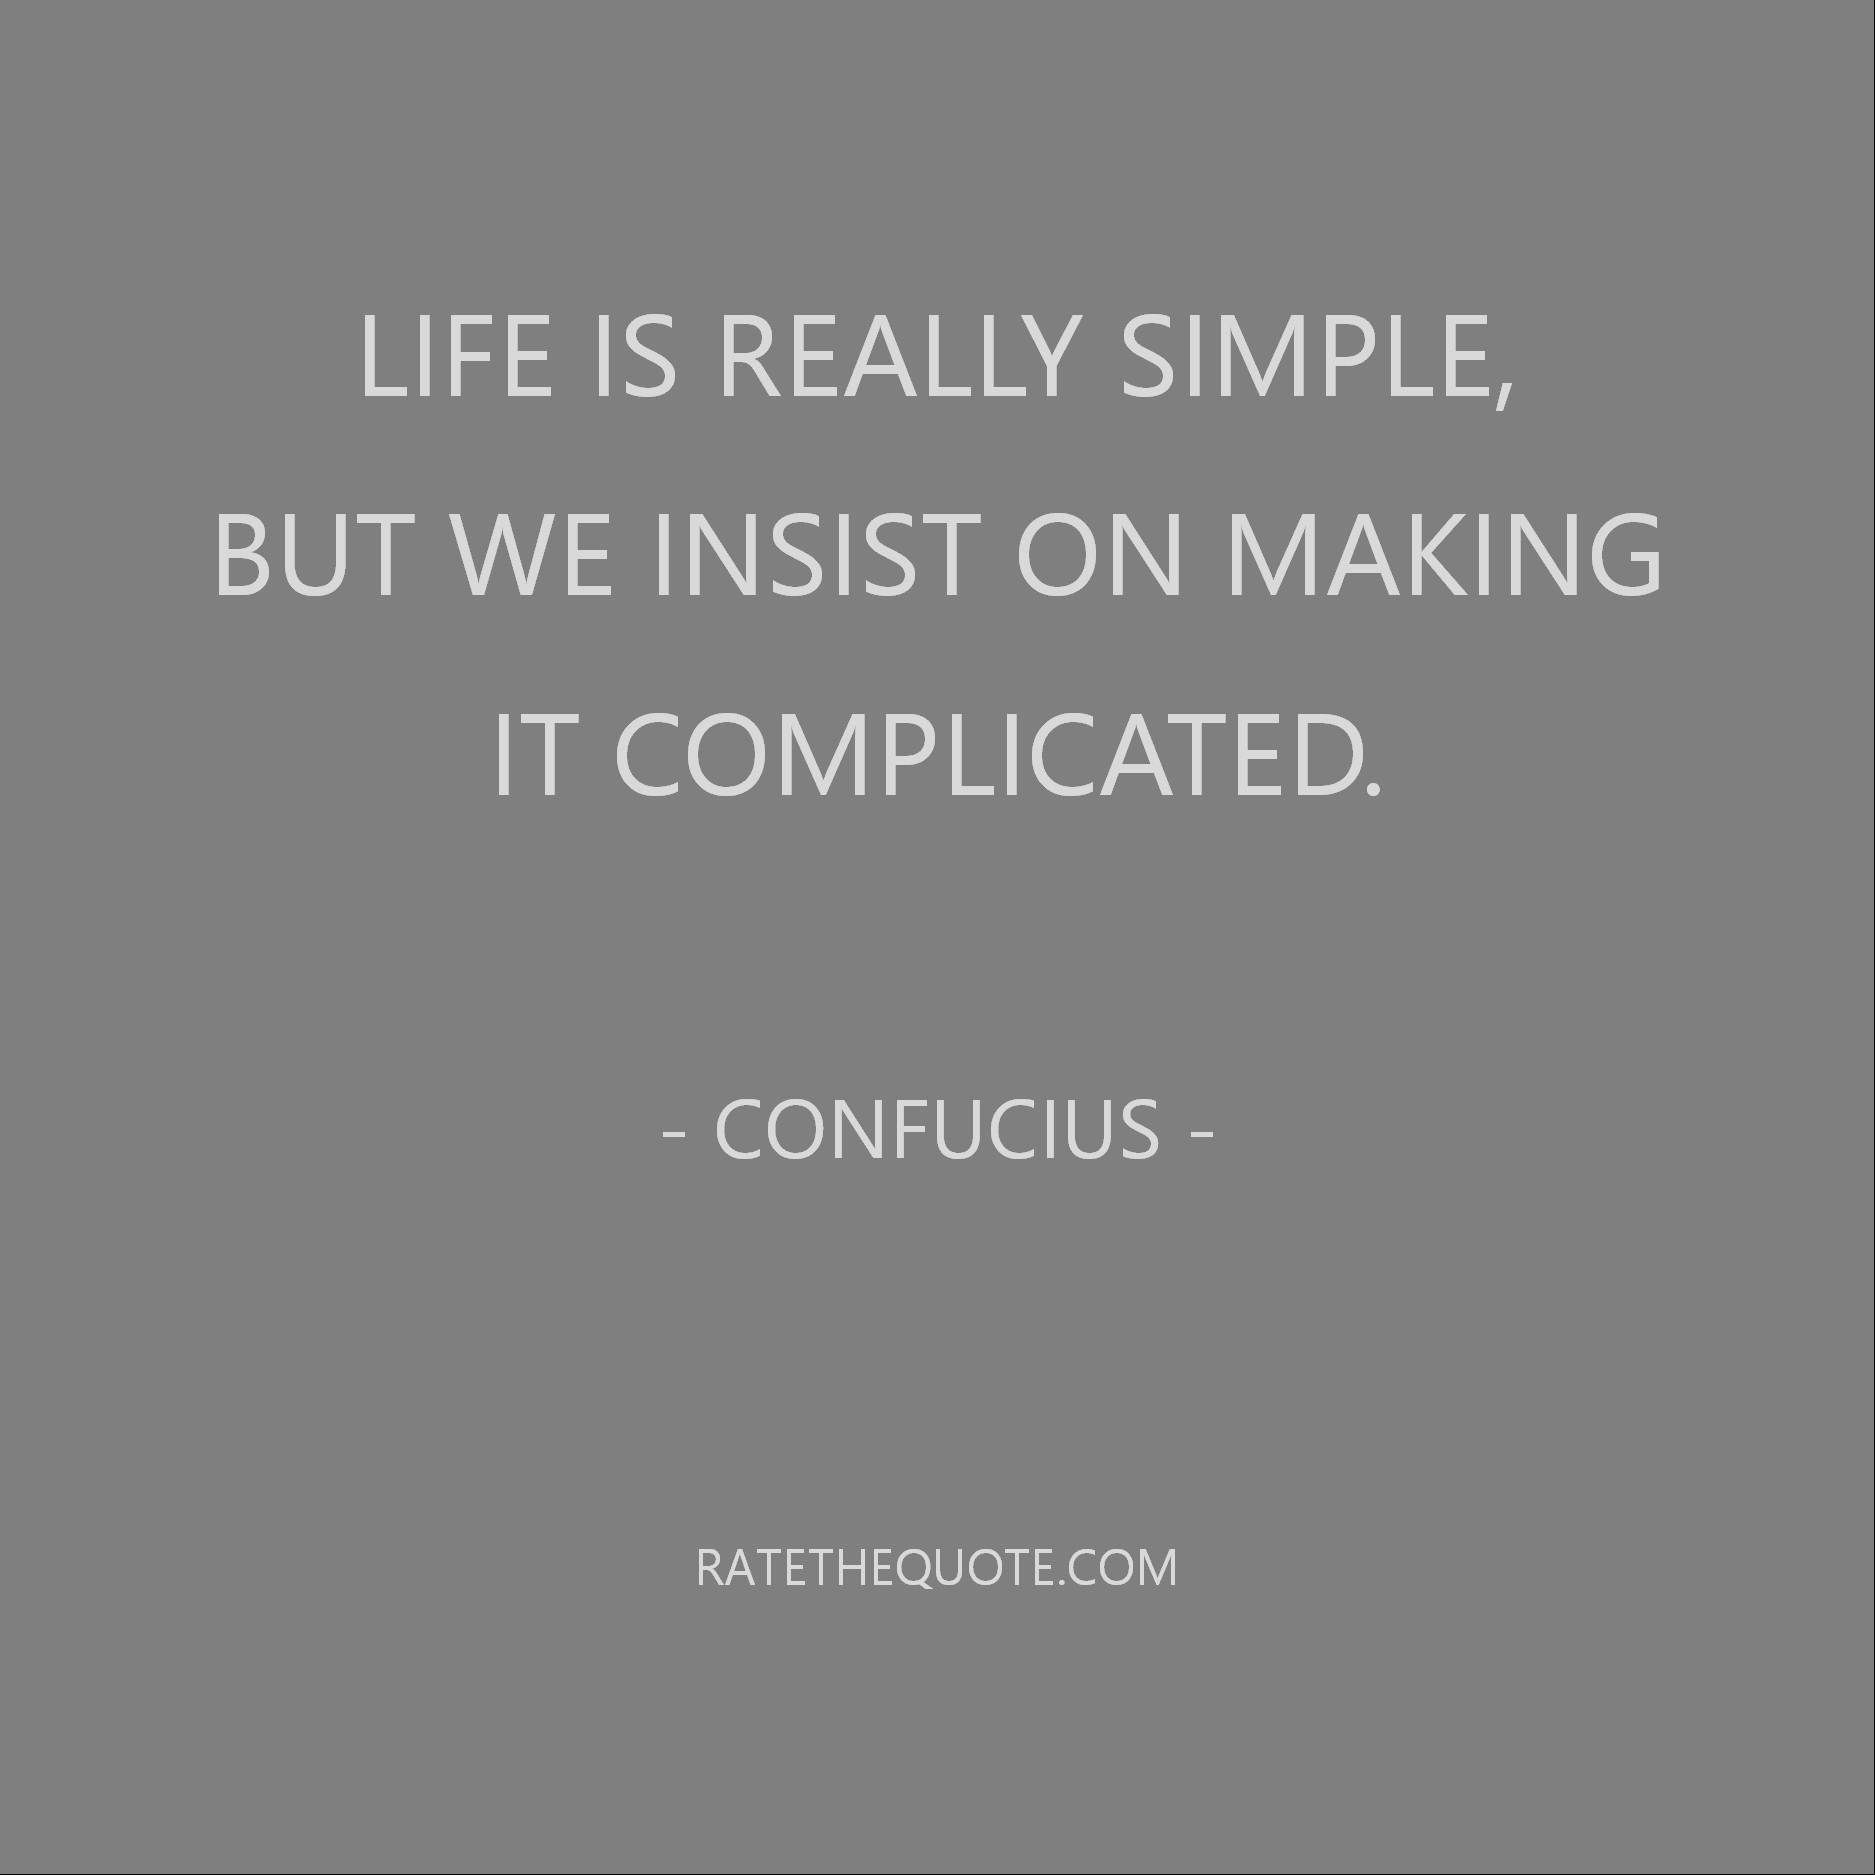 Life Quote : Life is really simple, but we insist on making it complicated. Confucius